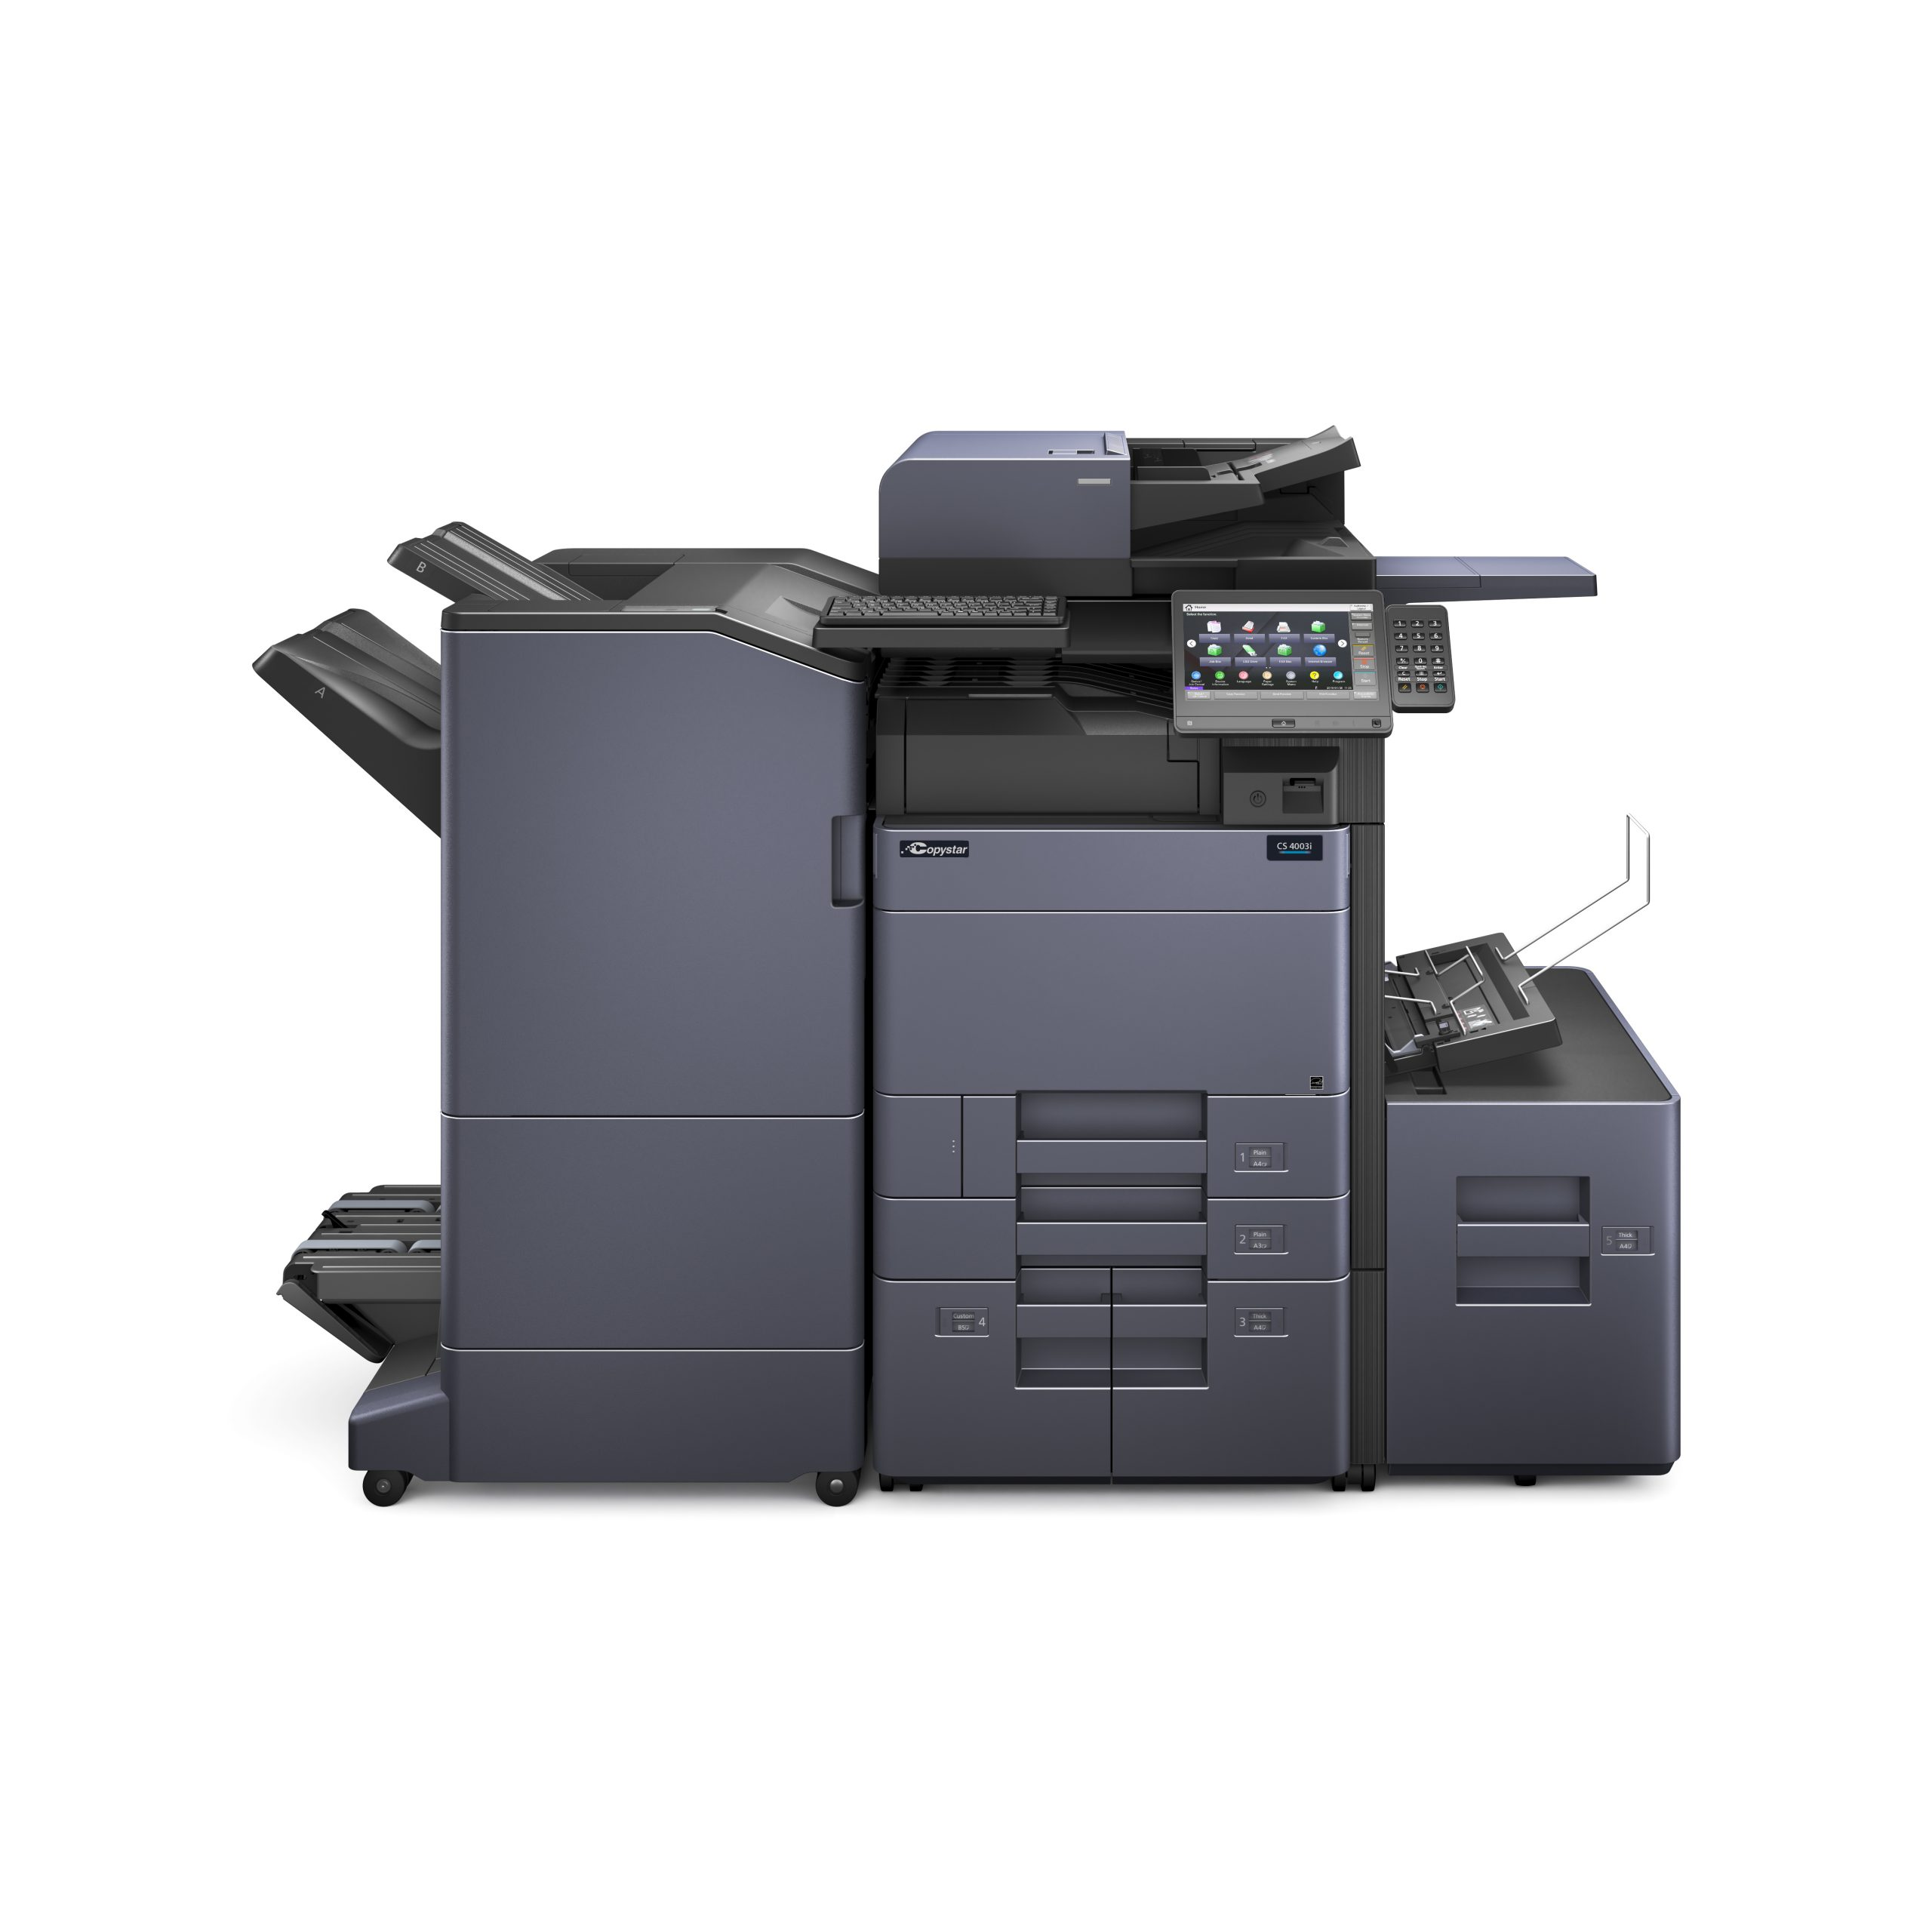 kyocera CS_4003i ALL IN ONE COPY MACHINE SALES WI